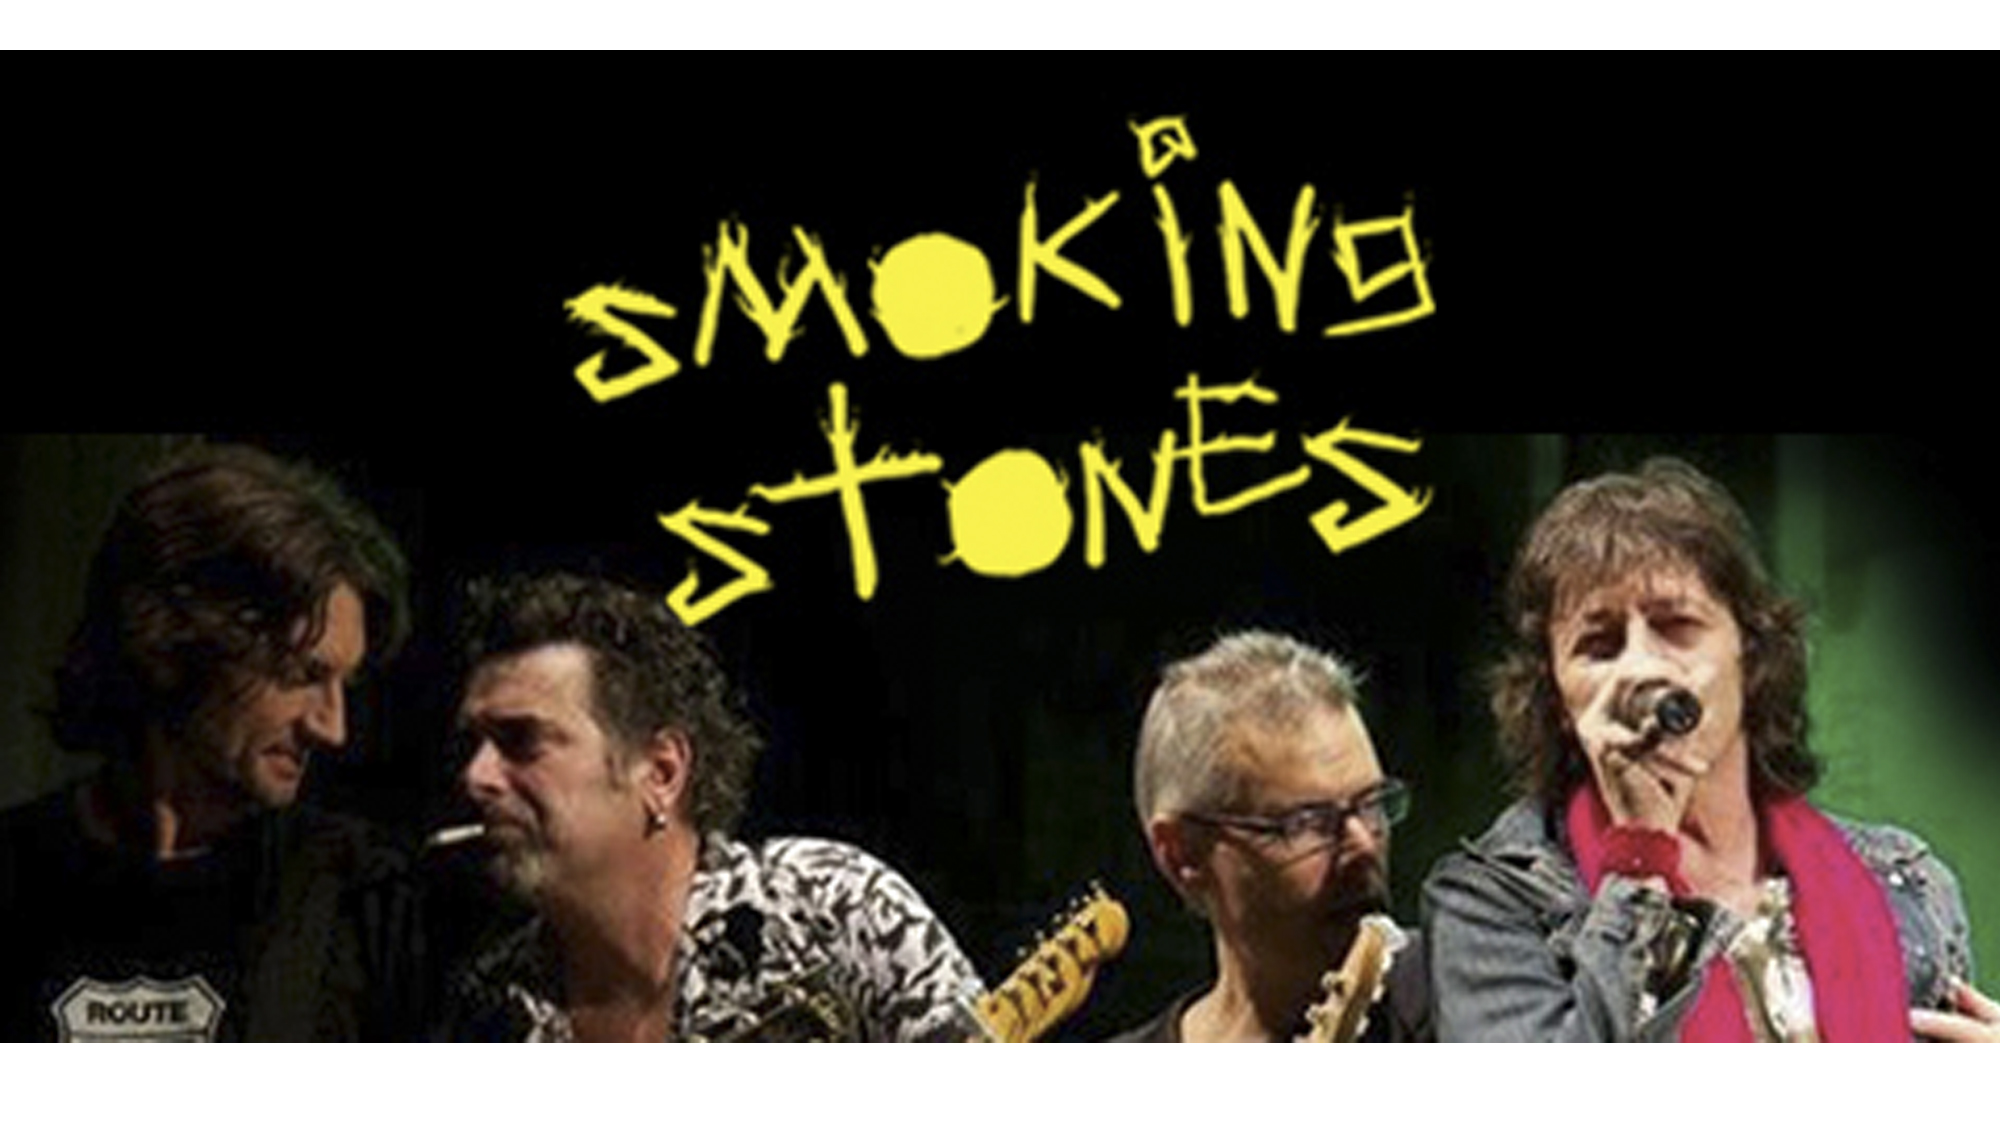 Smoking Stones (Tribut a The Rolling Stones)